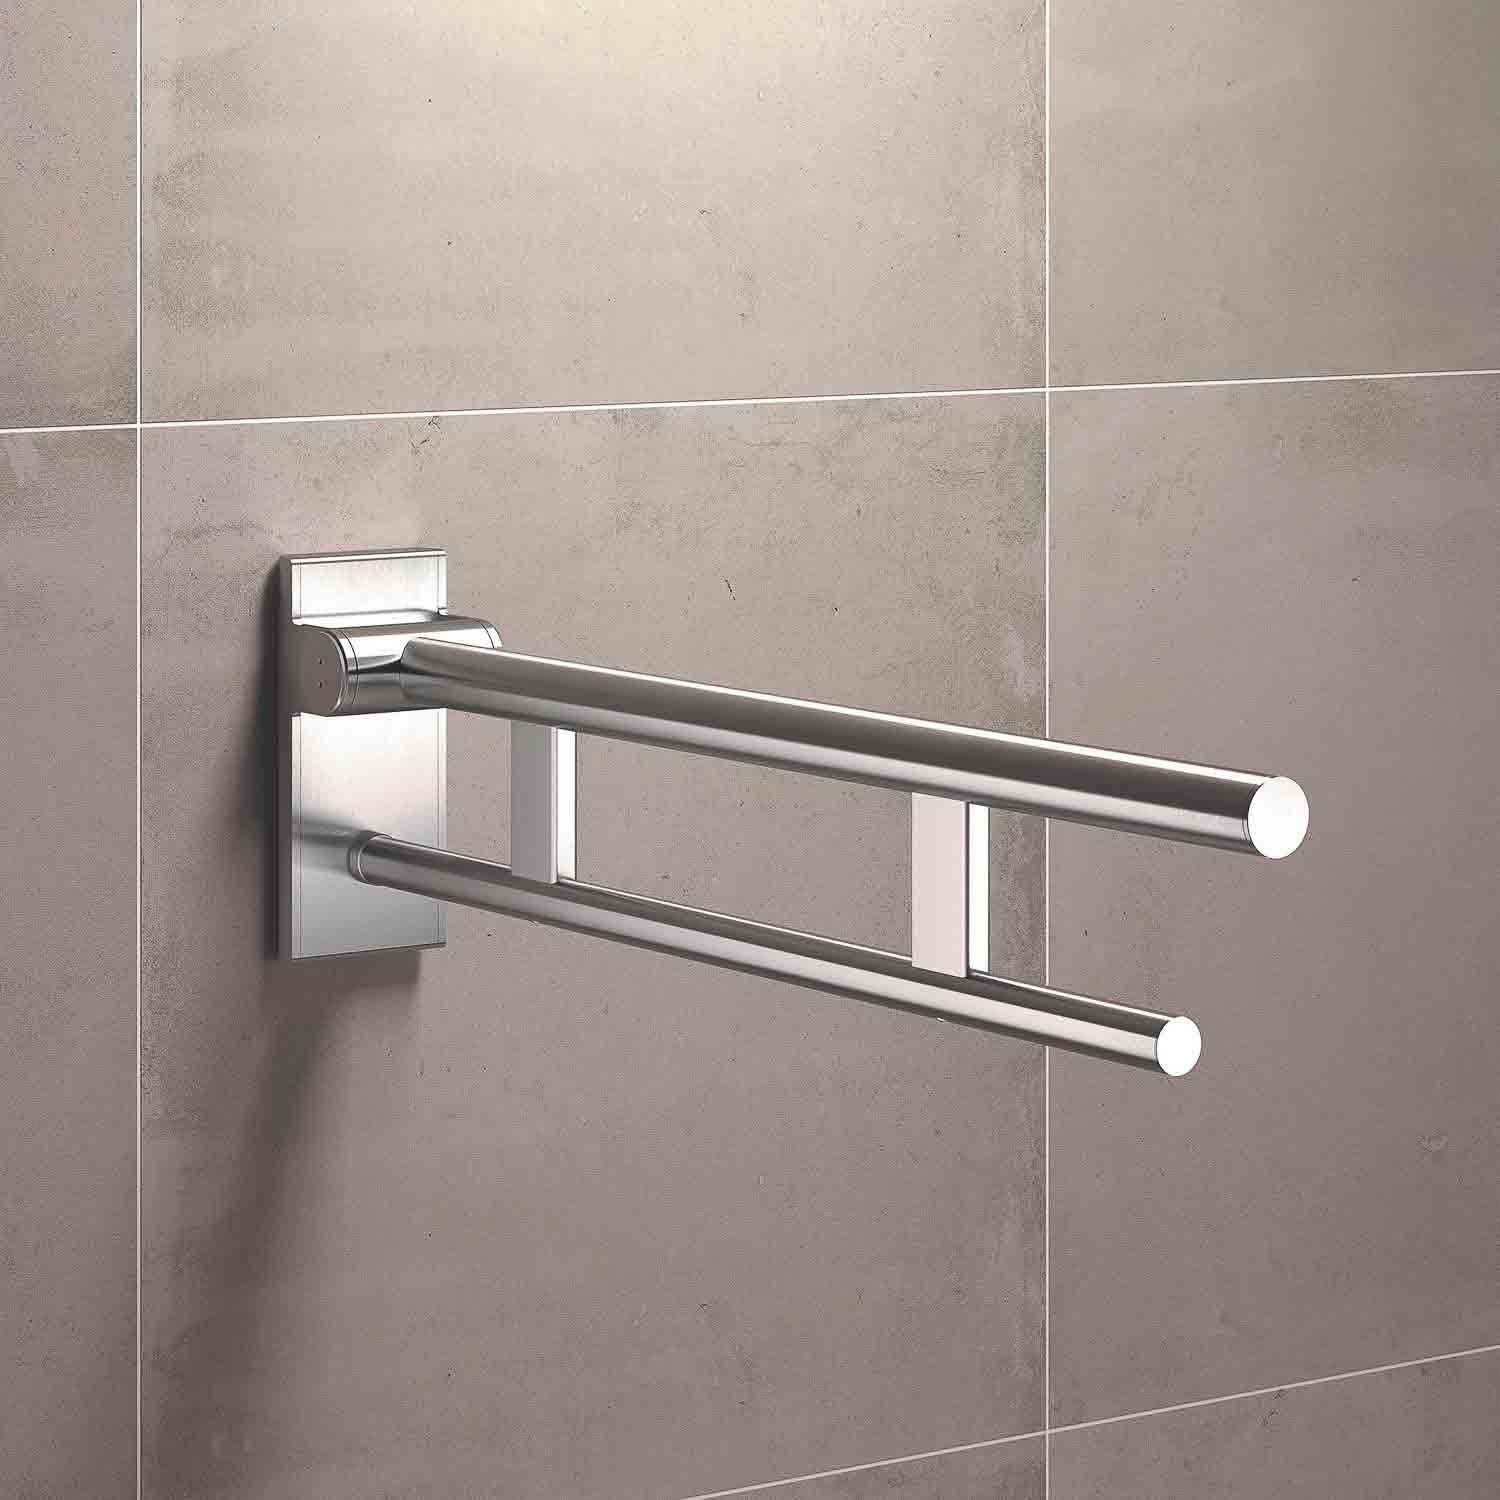 600mm Freestyle Removable Hinged Grab Rail Set with a satin steel finish lifestyle image